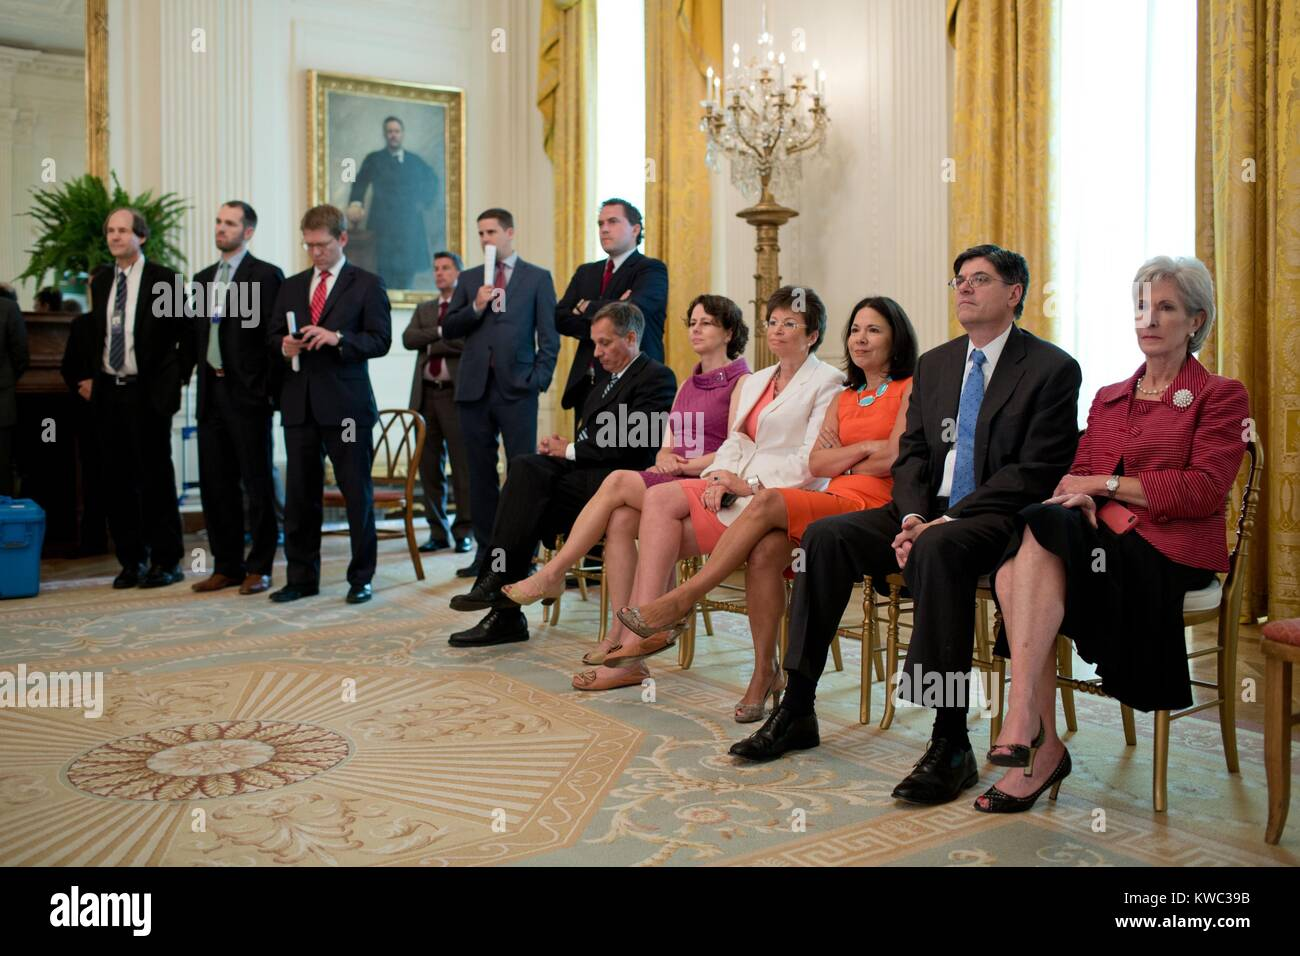 President Obama's staff listen as he broadcasts remarks about Supreme Court's ruling on 'Obama Care'. - Stock Image